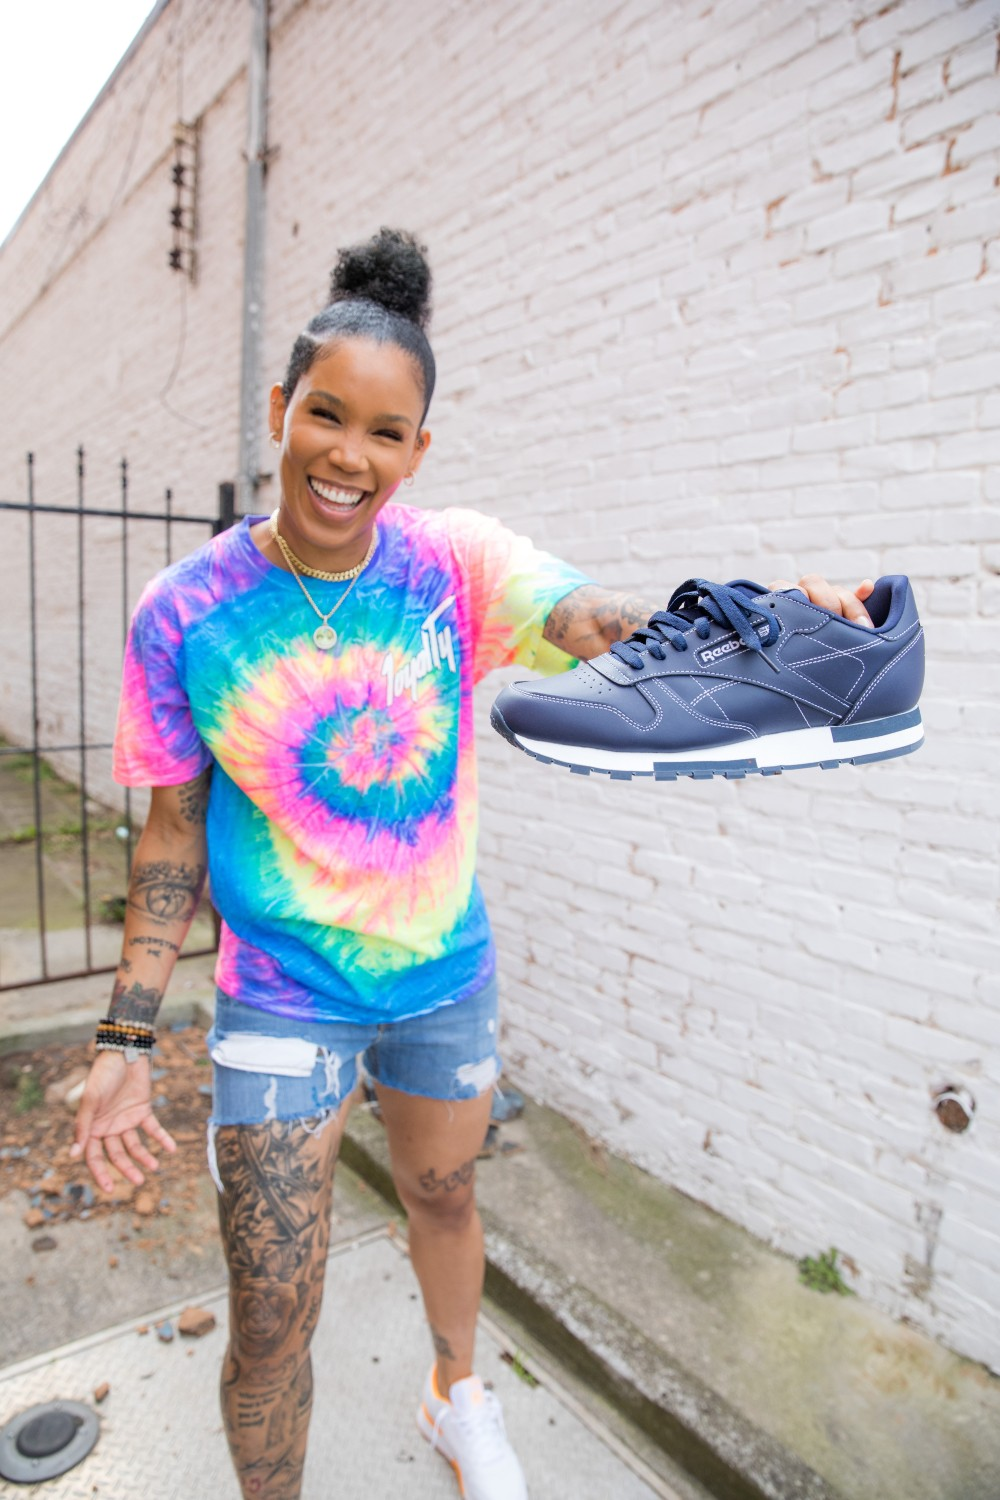 Foot Locker and Reebok teamed up with the Seattle Storm's Tamera Young to release its Classic Leather Threads collection.